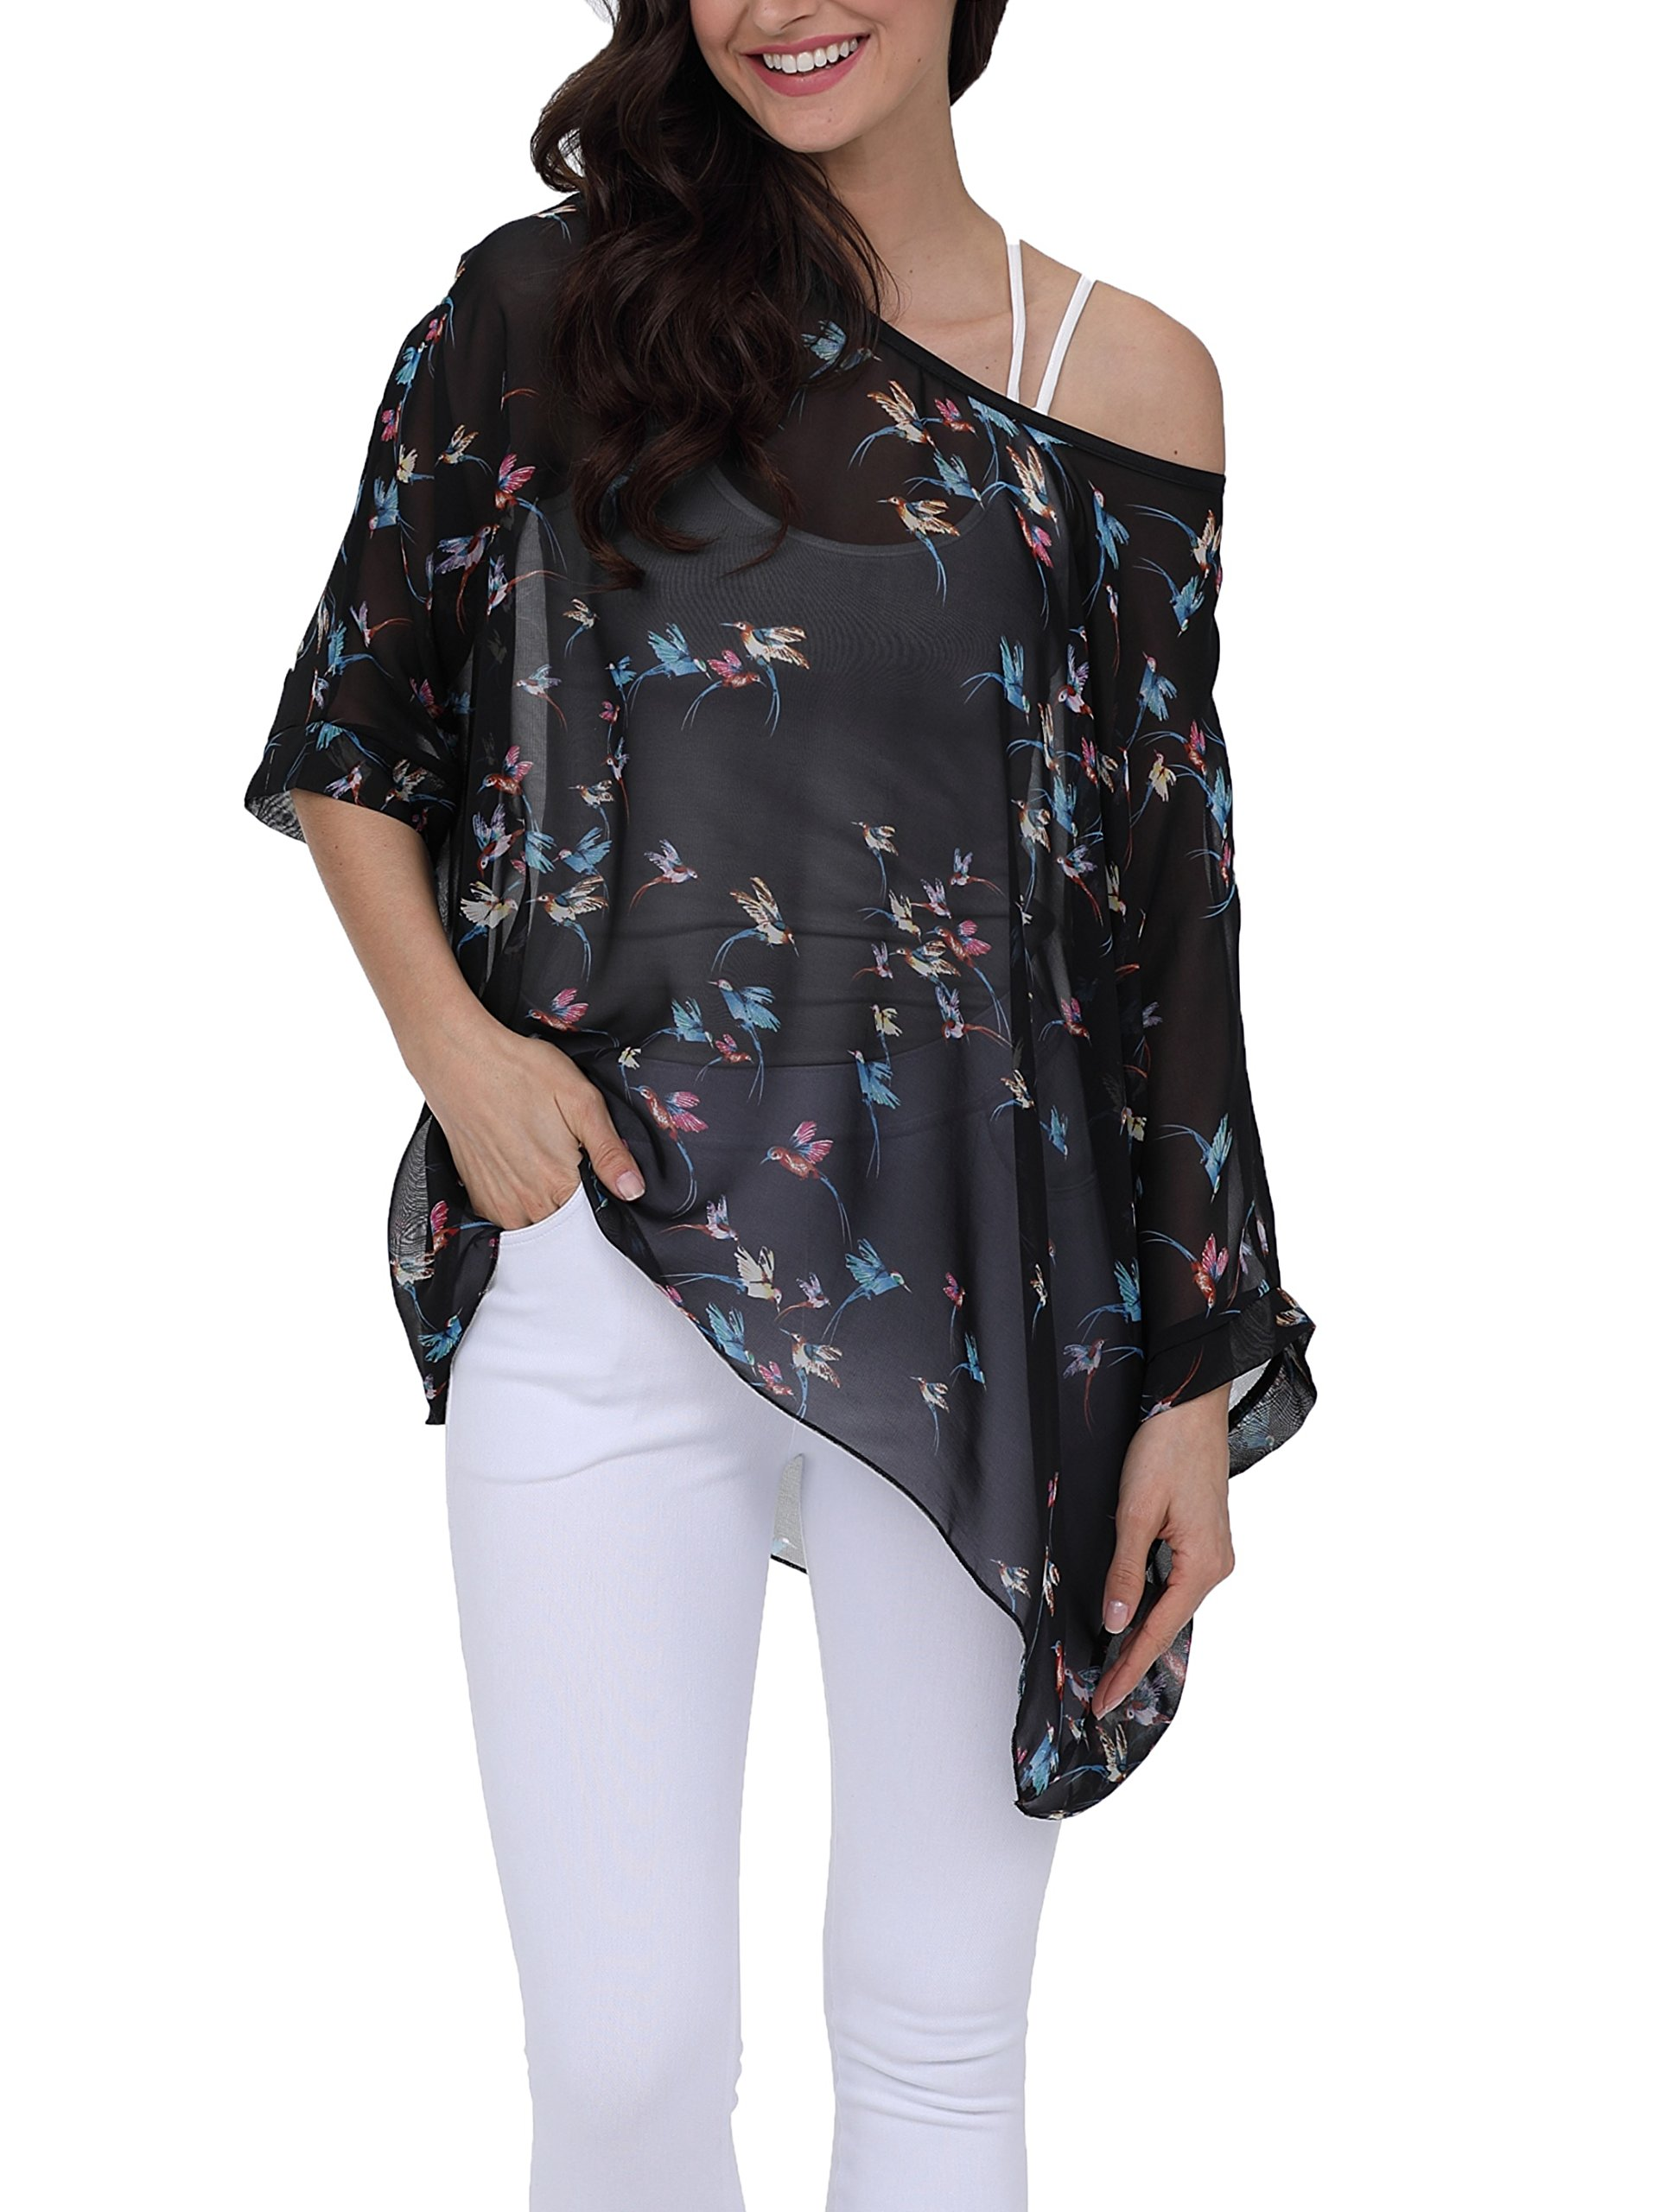 iNewbetter Womens Floral Batwing Sleeve Chiffon Beach Loose Blouse Tunic Tops PB299 by iNewbetter